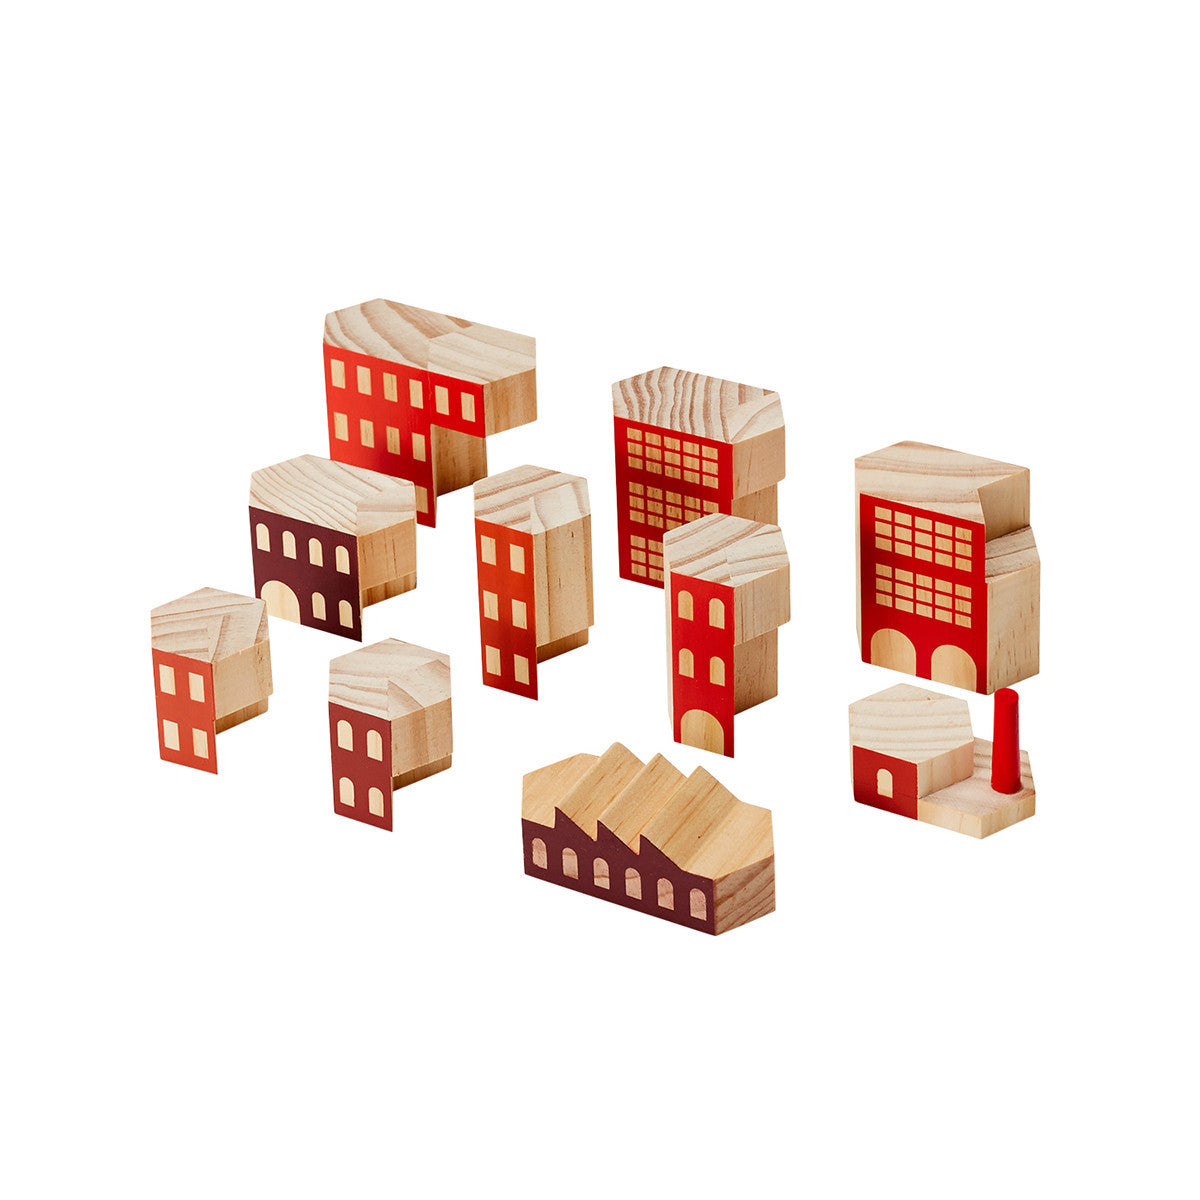 Areaware Blockitecture Factory Building Blocks